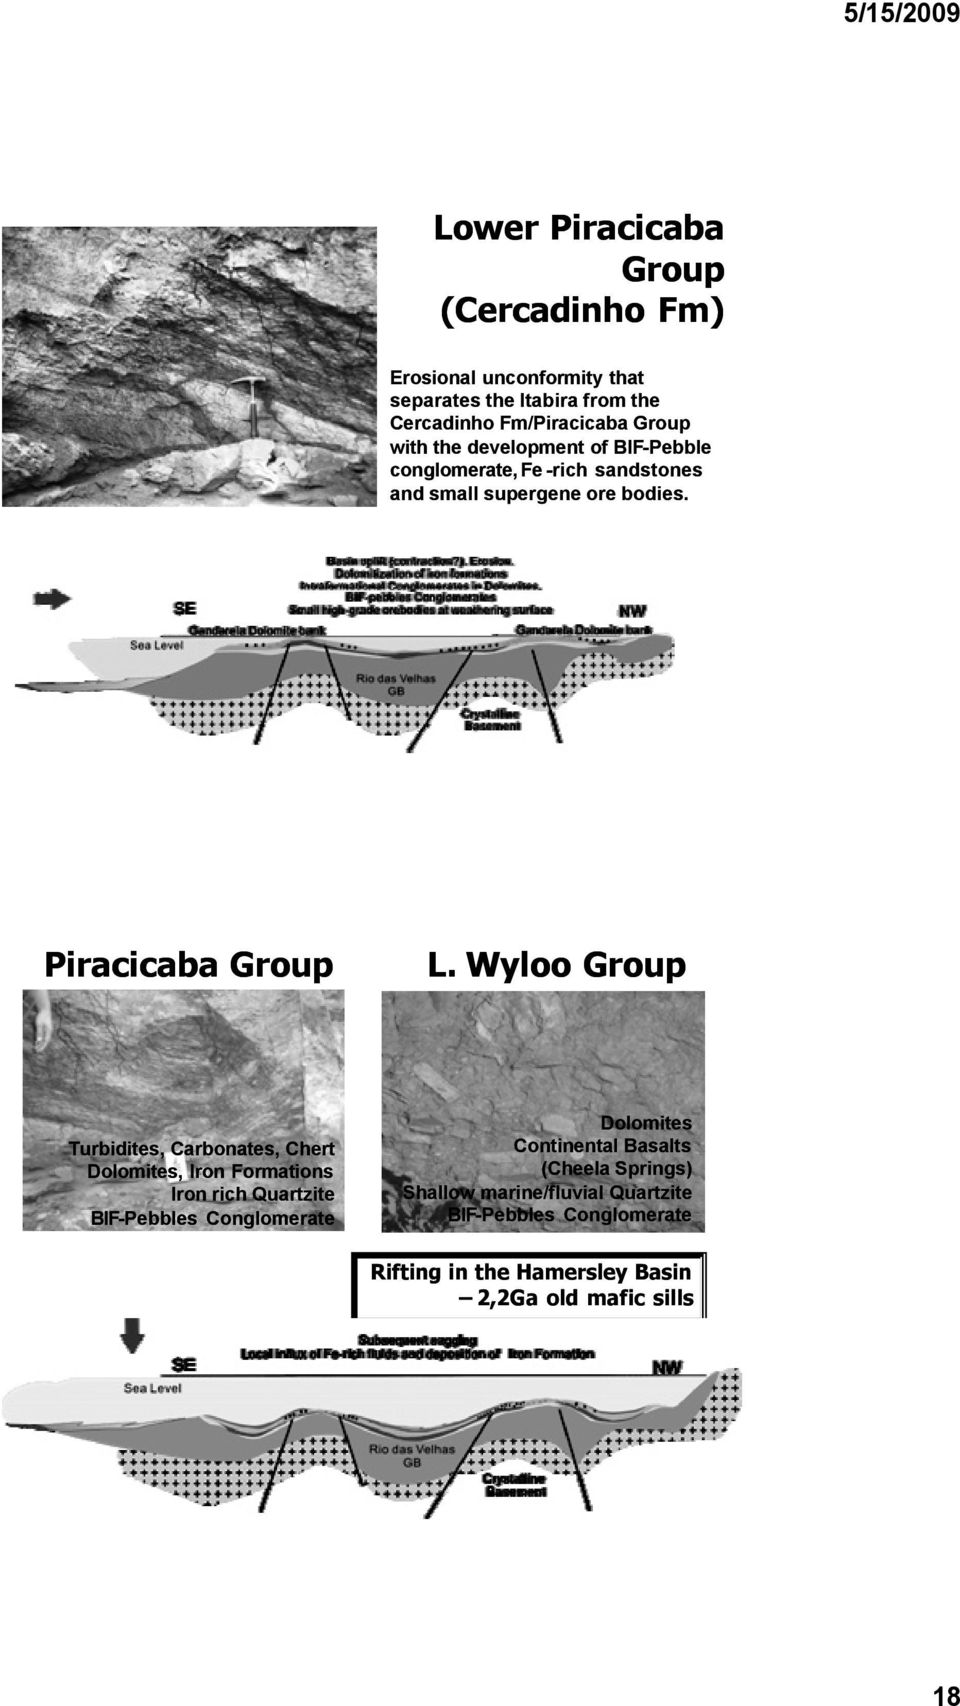 Wyloo Group Turbidites, Carbonates, Chert Dolomites, Iron Formations Iron rich Quartzite BIF-Pebbles Conglomerate Dolomites